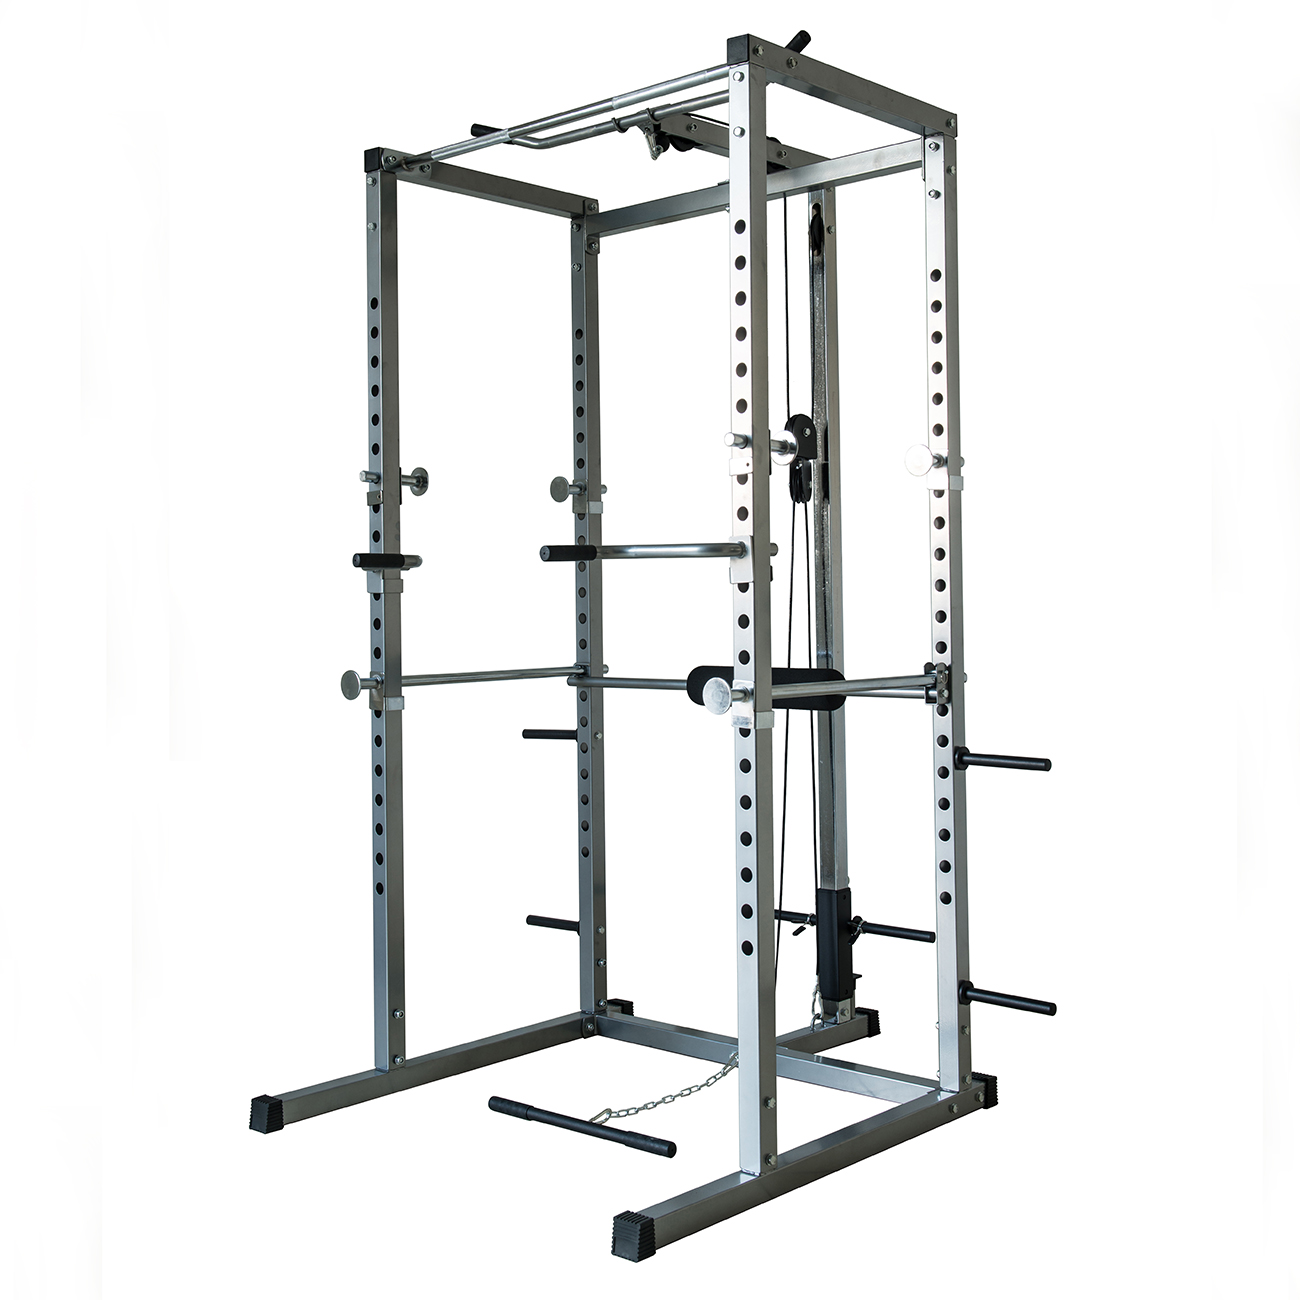 Akonza Athletics Fitness Power Rack with Lat Pull Attachment w  Weight Holder Exercise Station Function by Akonza